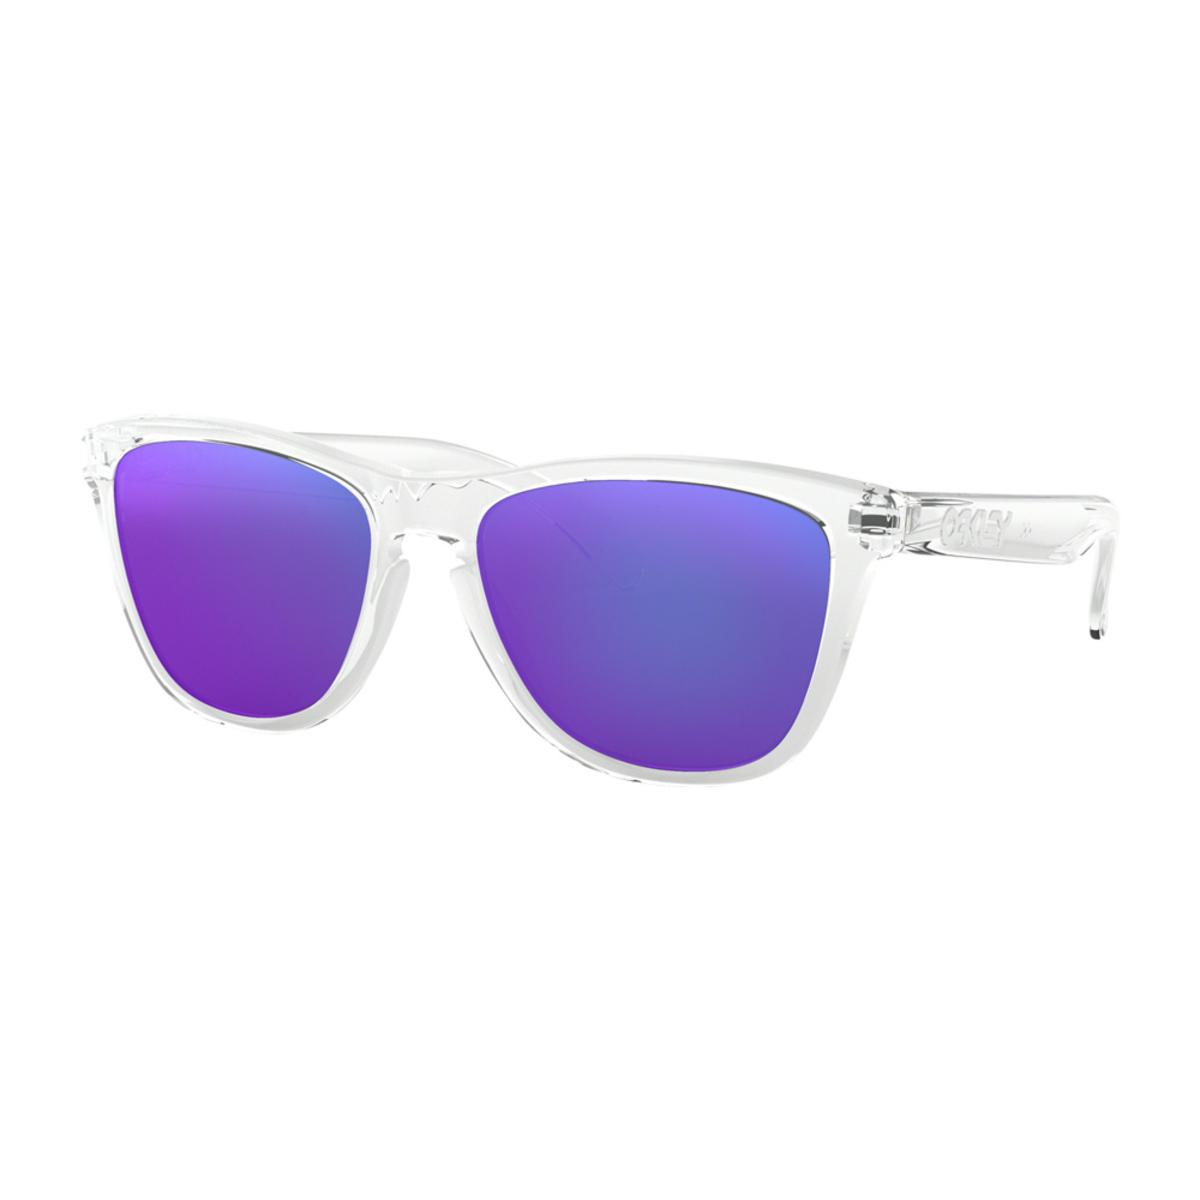 bd5ca48fd10 Oakley Frogskins Polished Clear Sunglasses w Violet Iridium - The Warming  Store